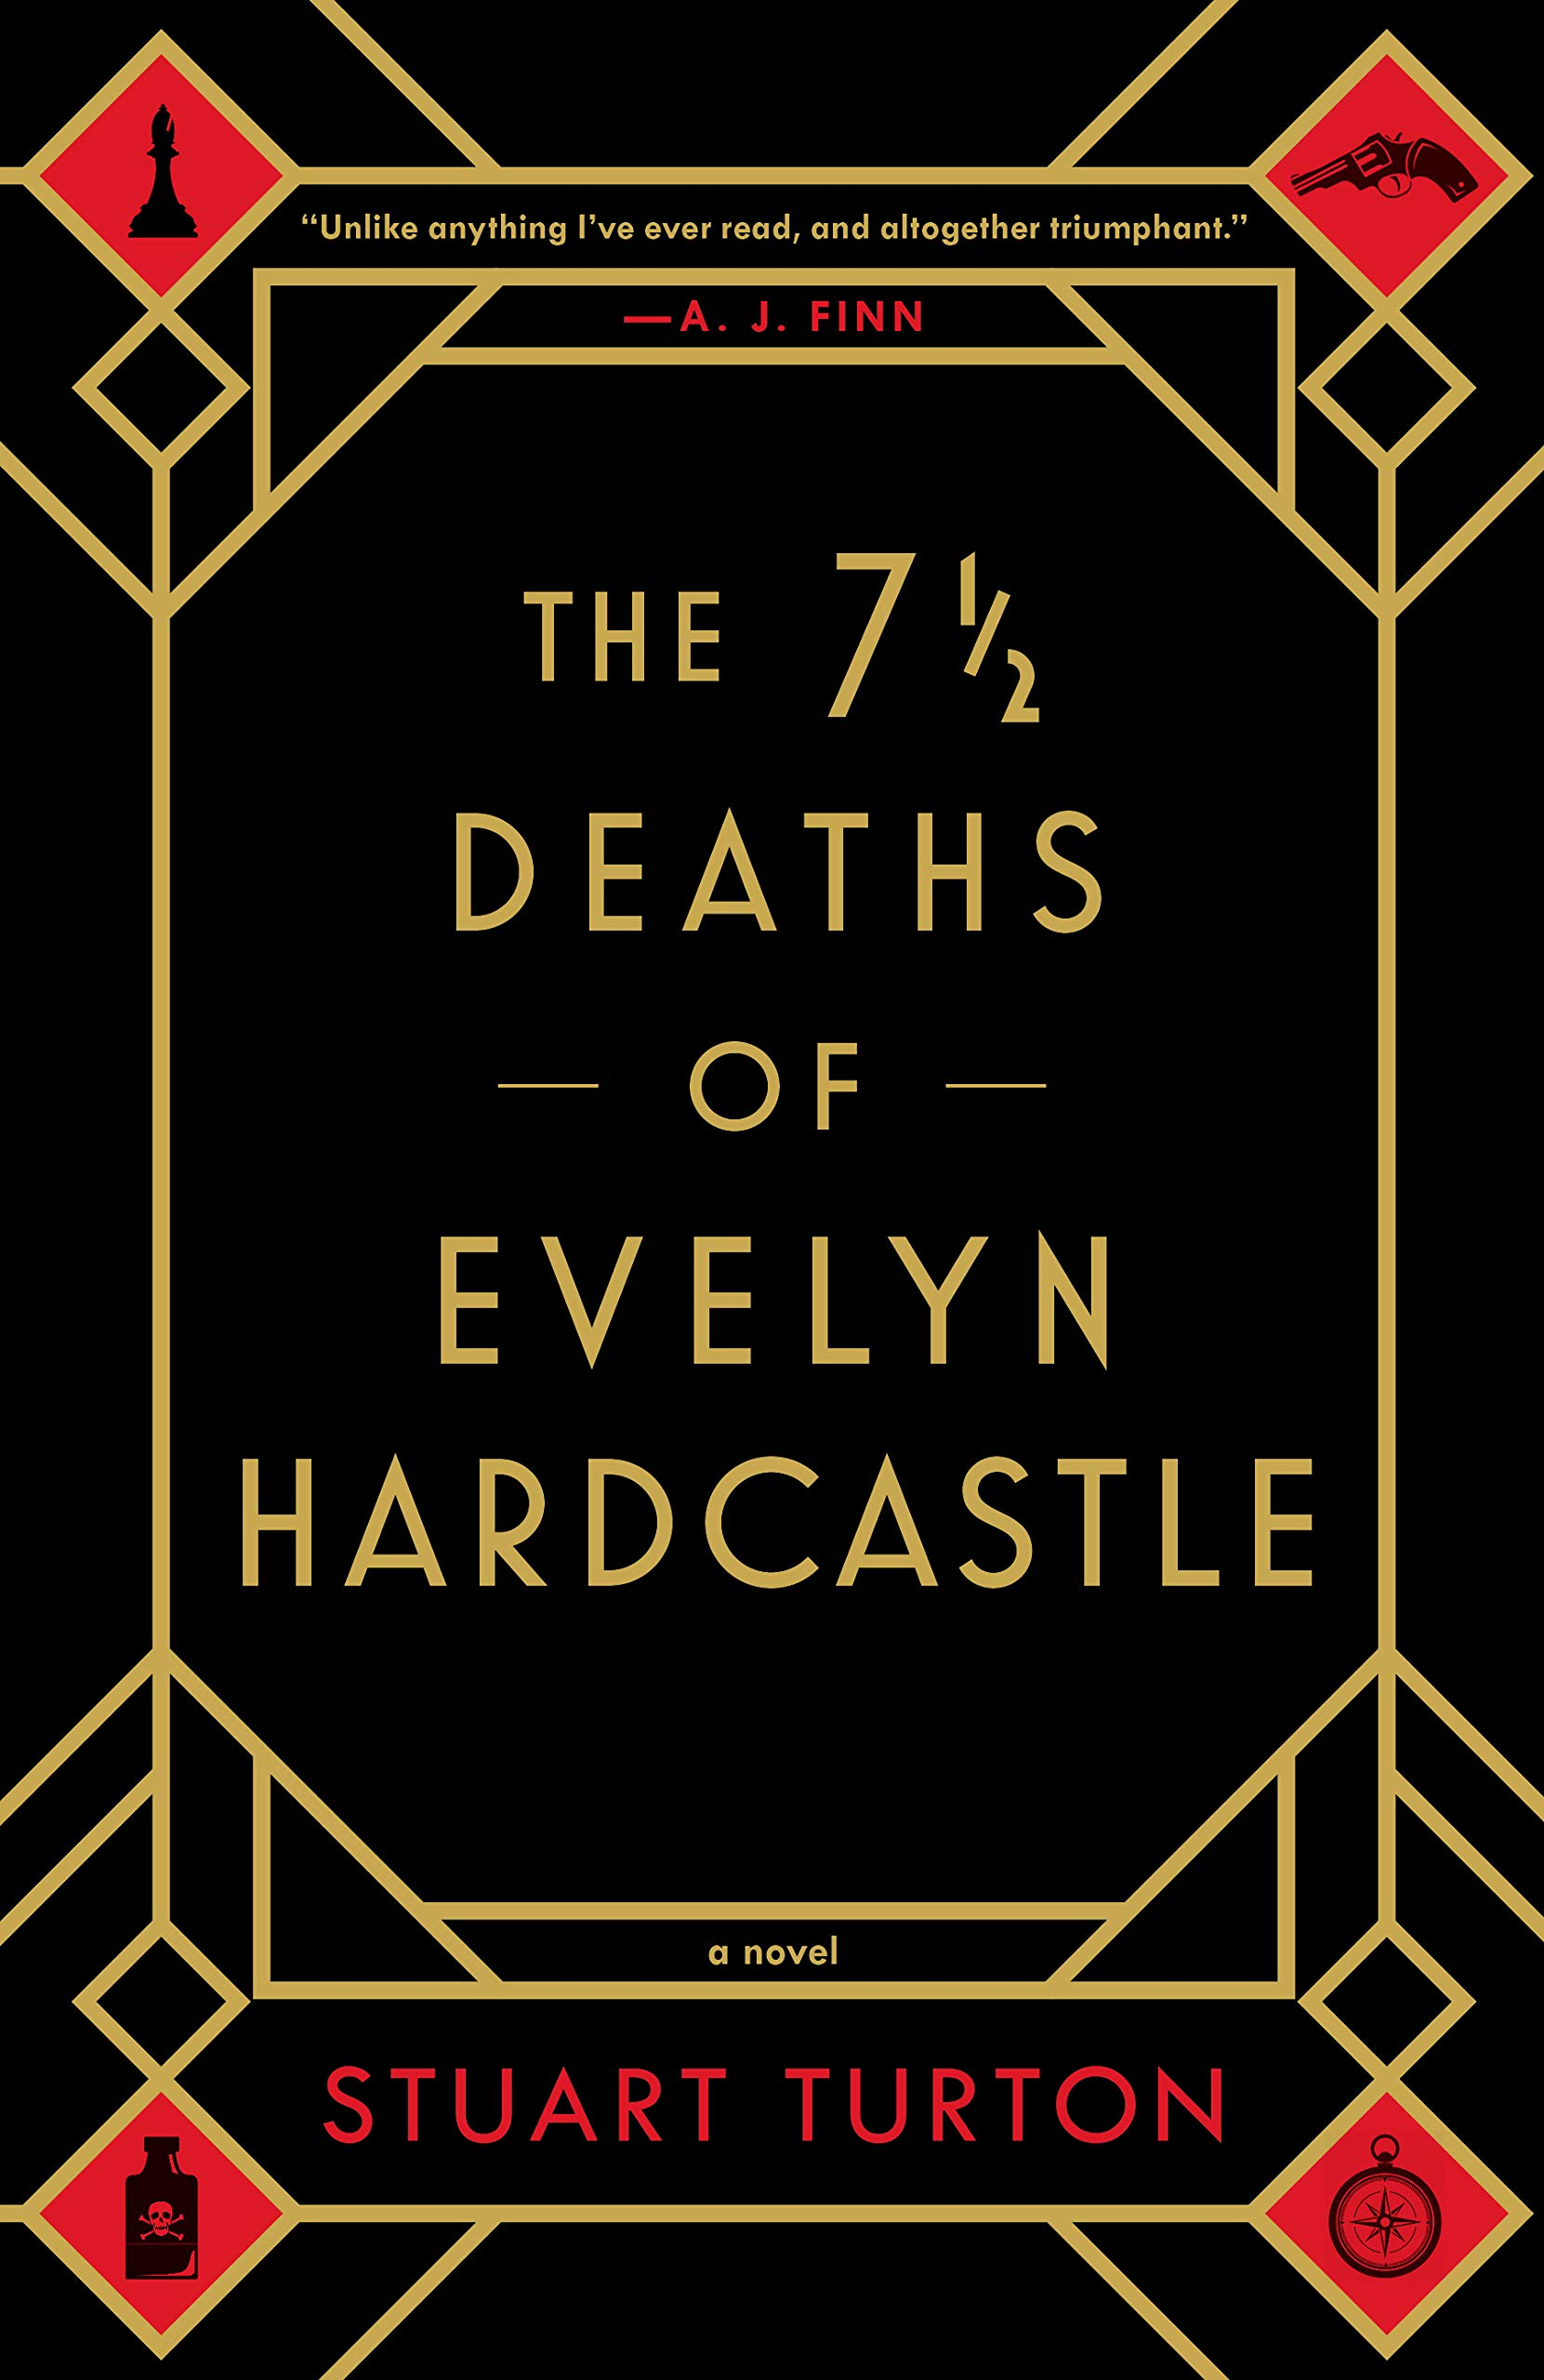 Image result for the 7 1/2 deaths of evelyn hardcastle